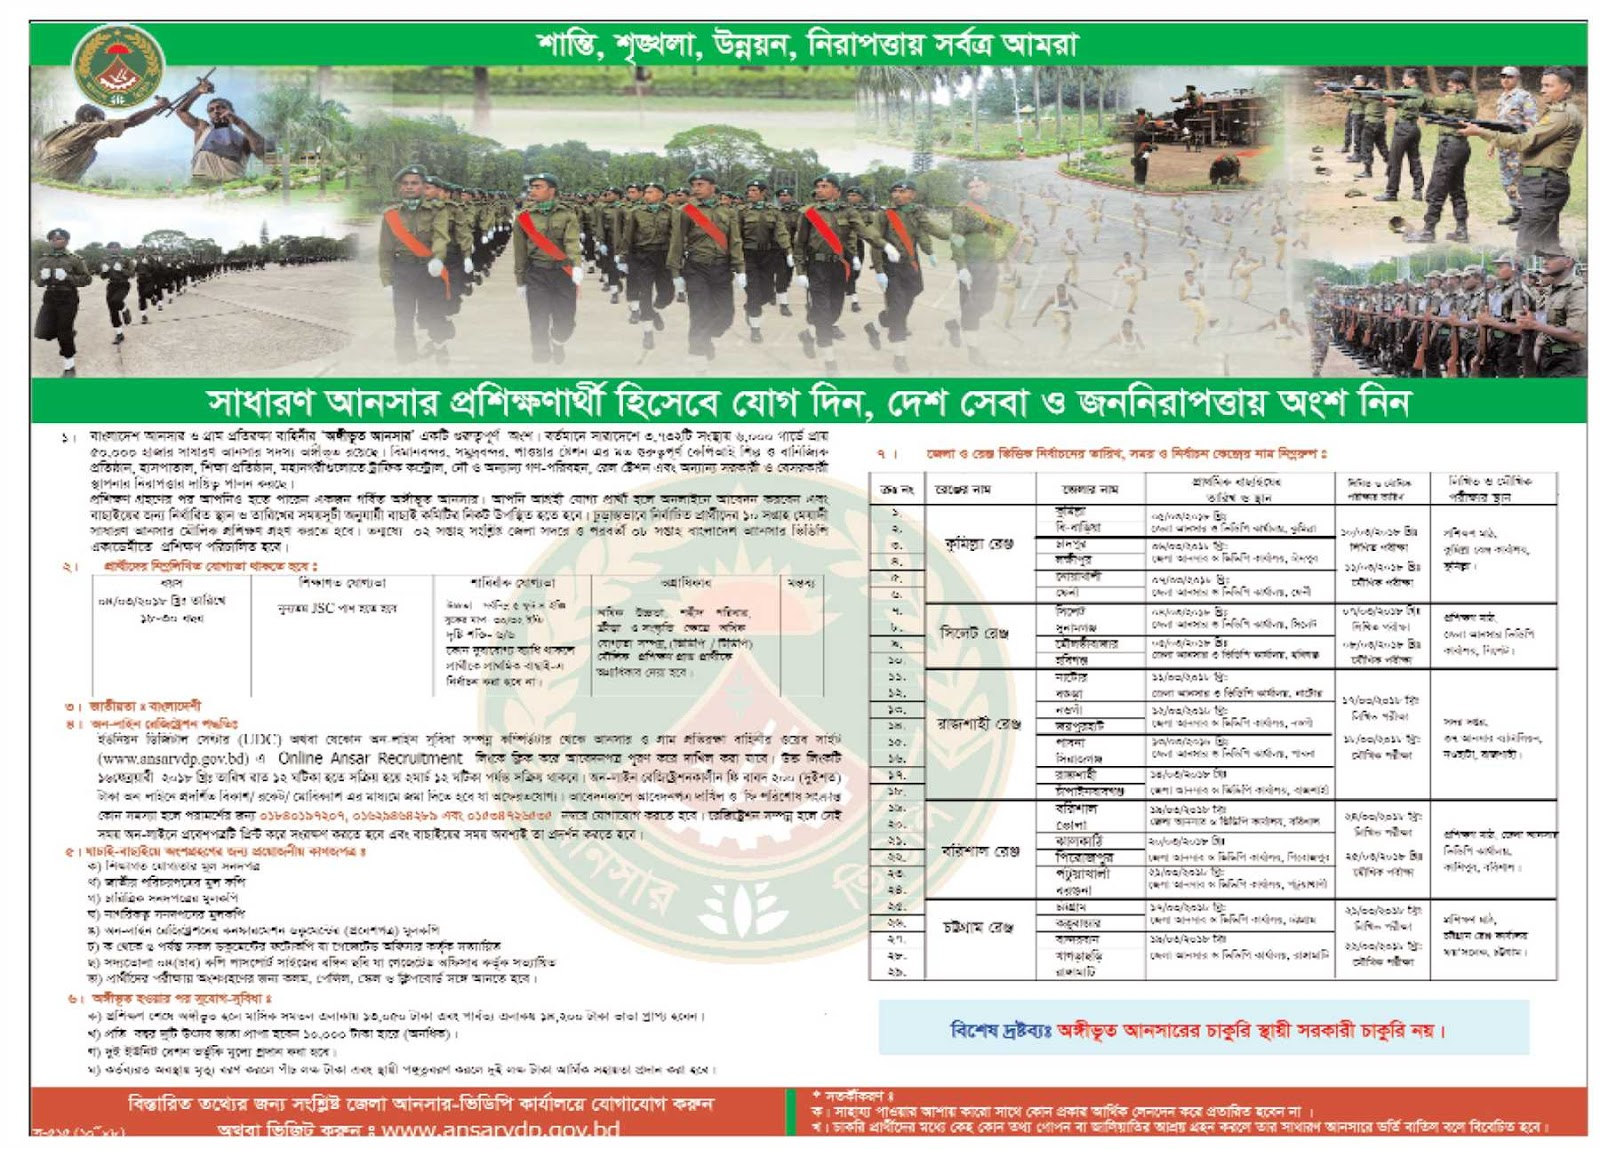 Bangladesh Ansar VDP Recruitment Ansar Circular 2018